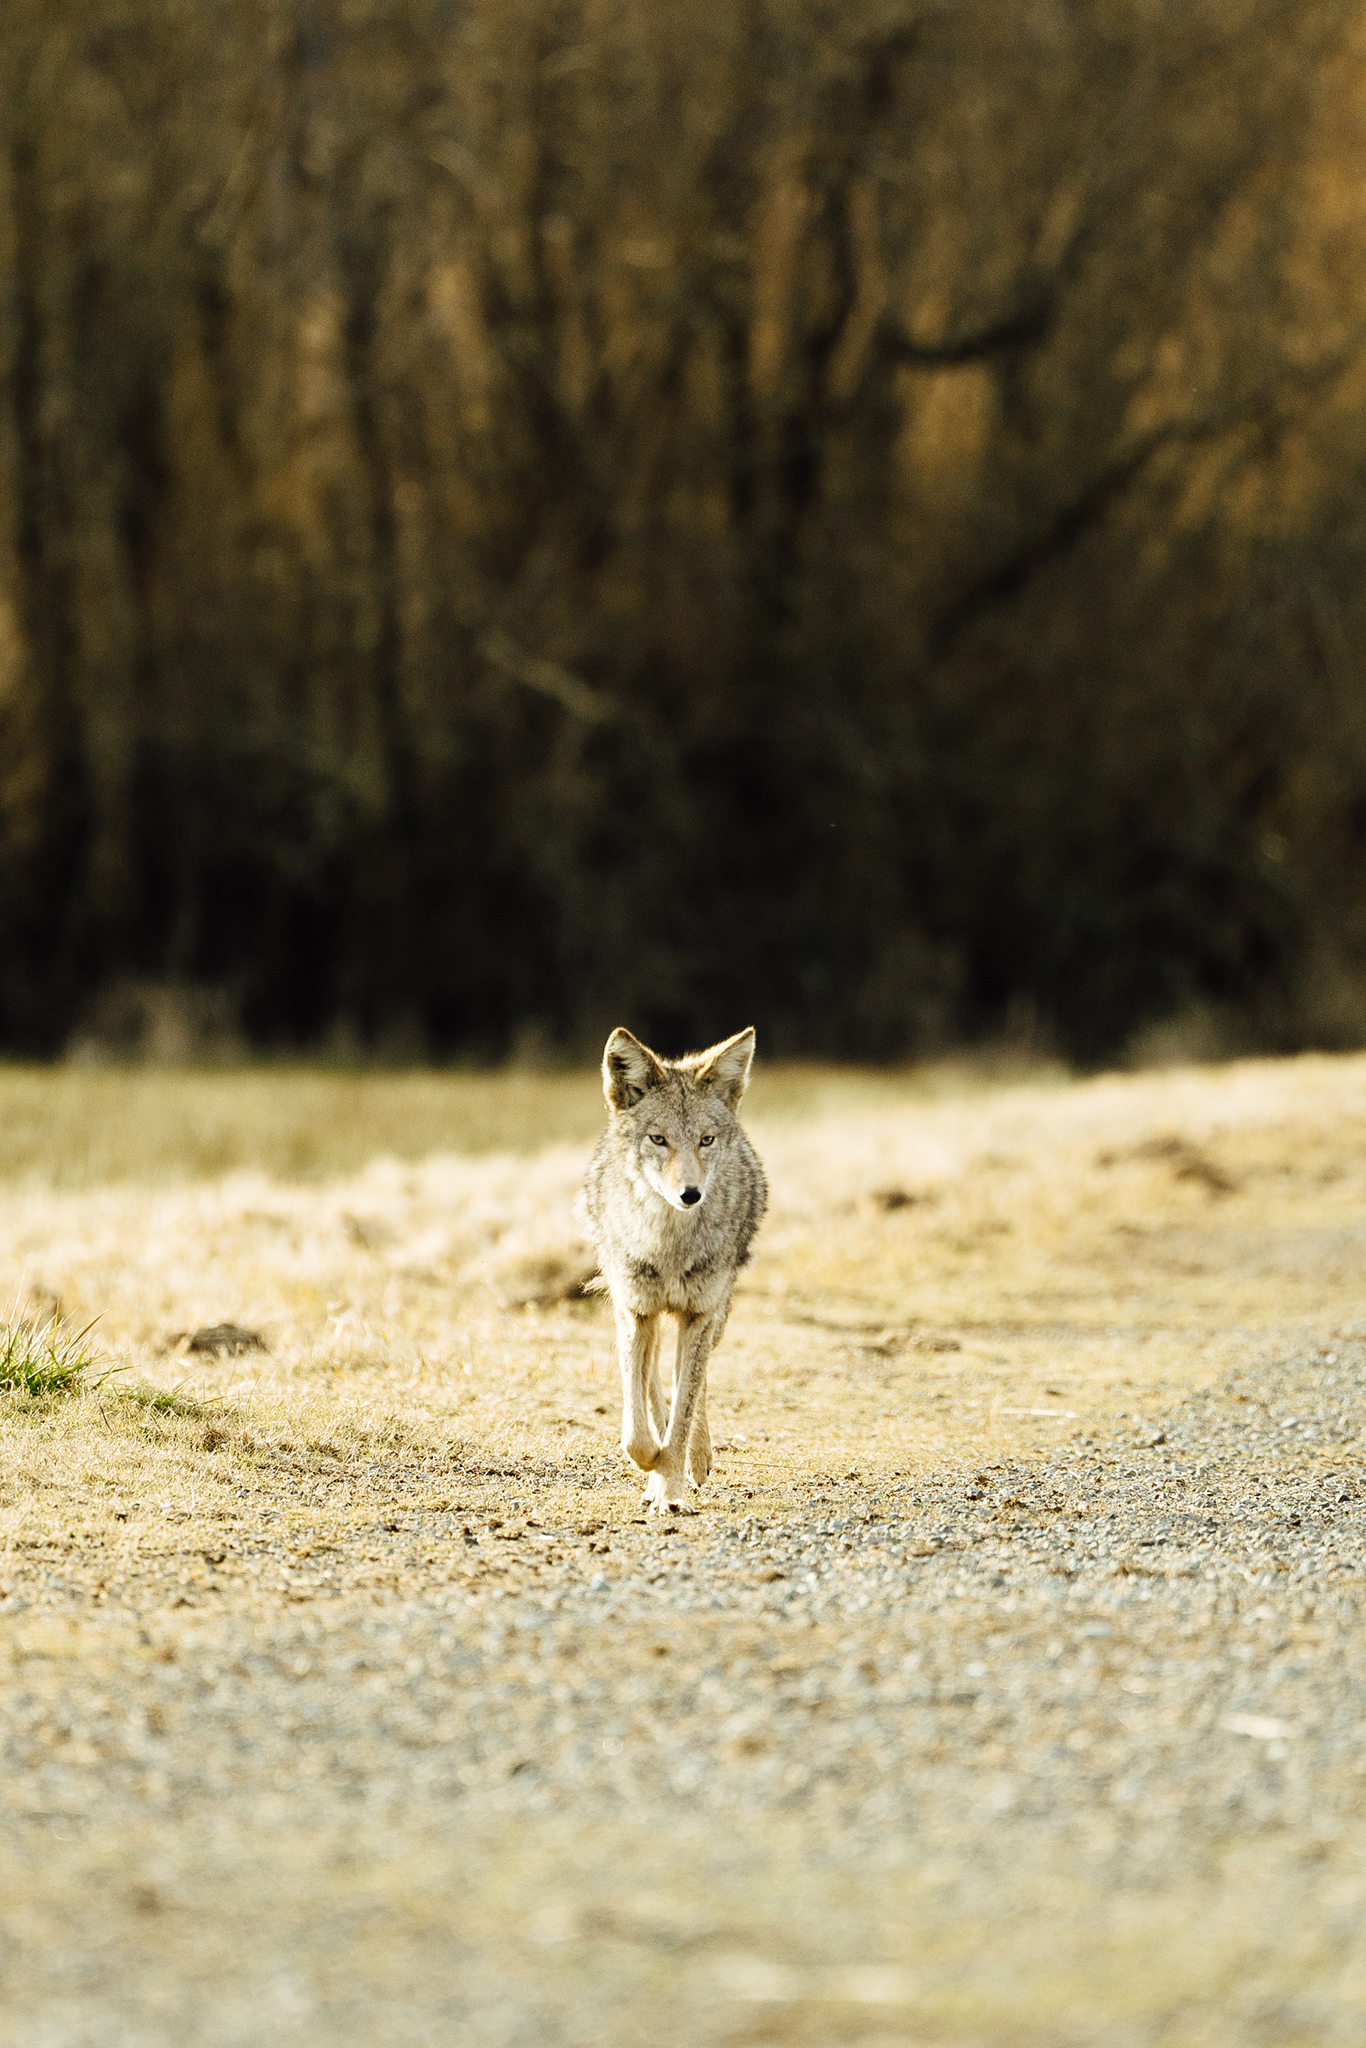 A photograph of a wild coyote in Tacoma, Washington